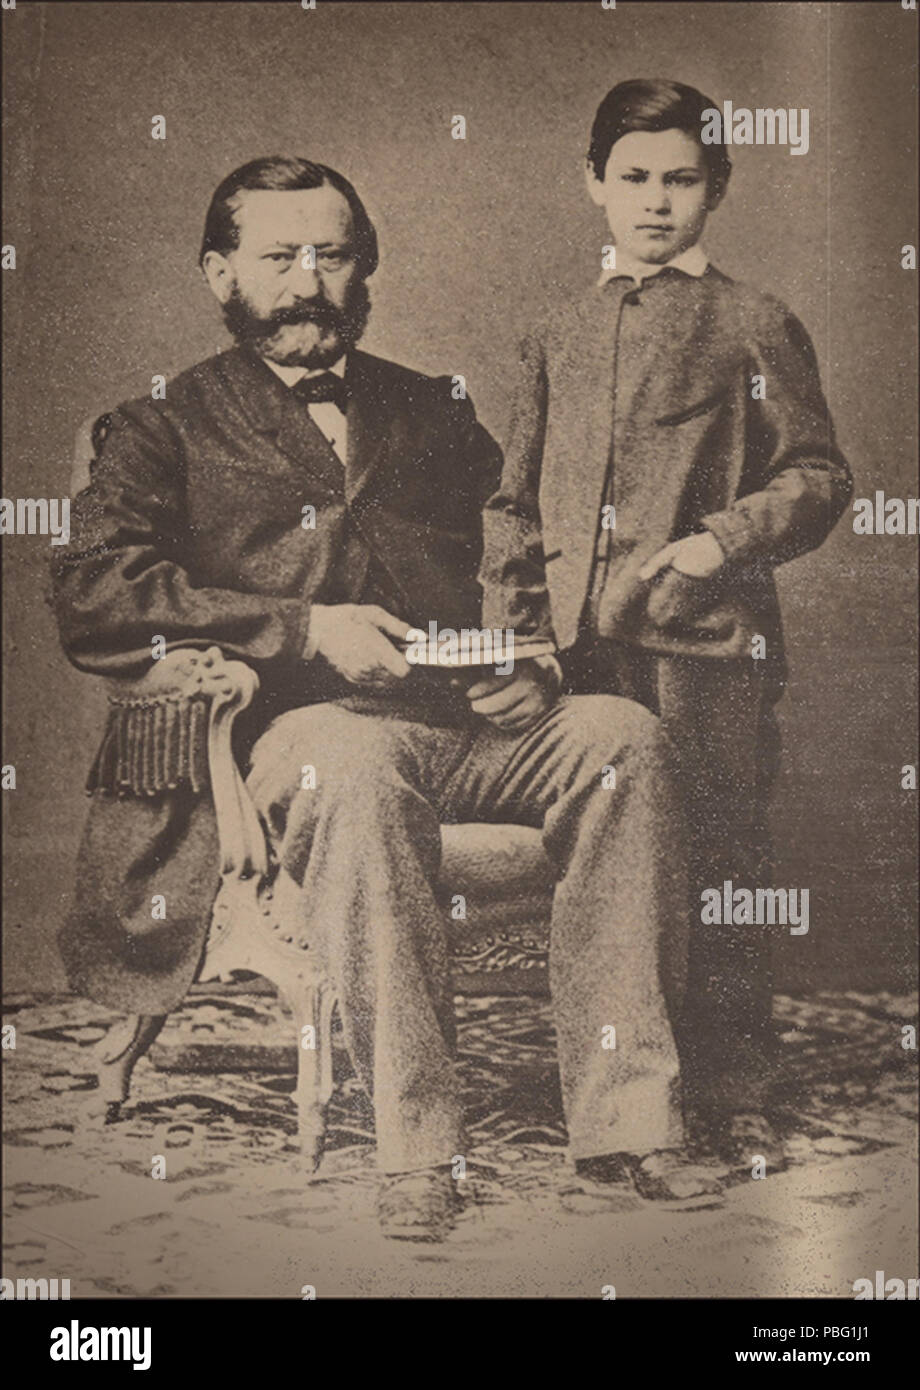 1535 Sigmund Freud as a child with his father - Stock Image